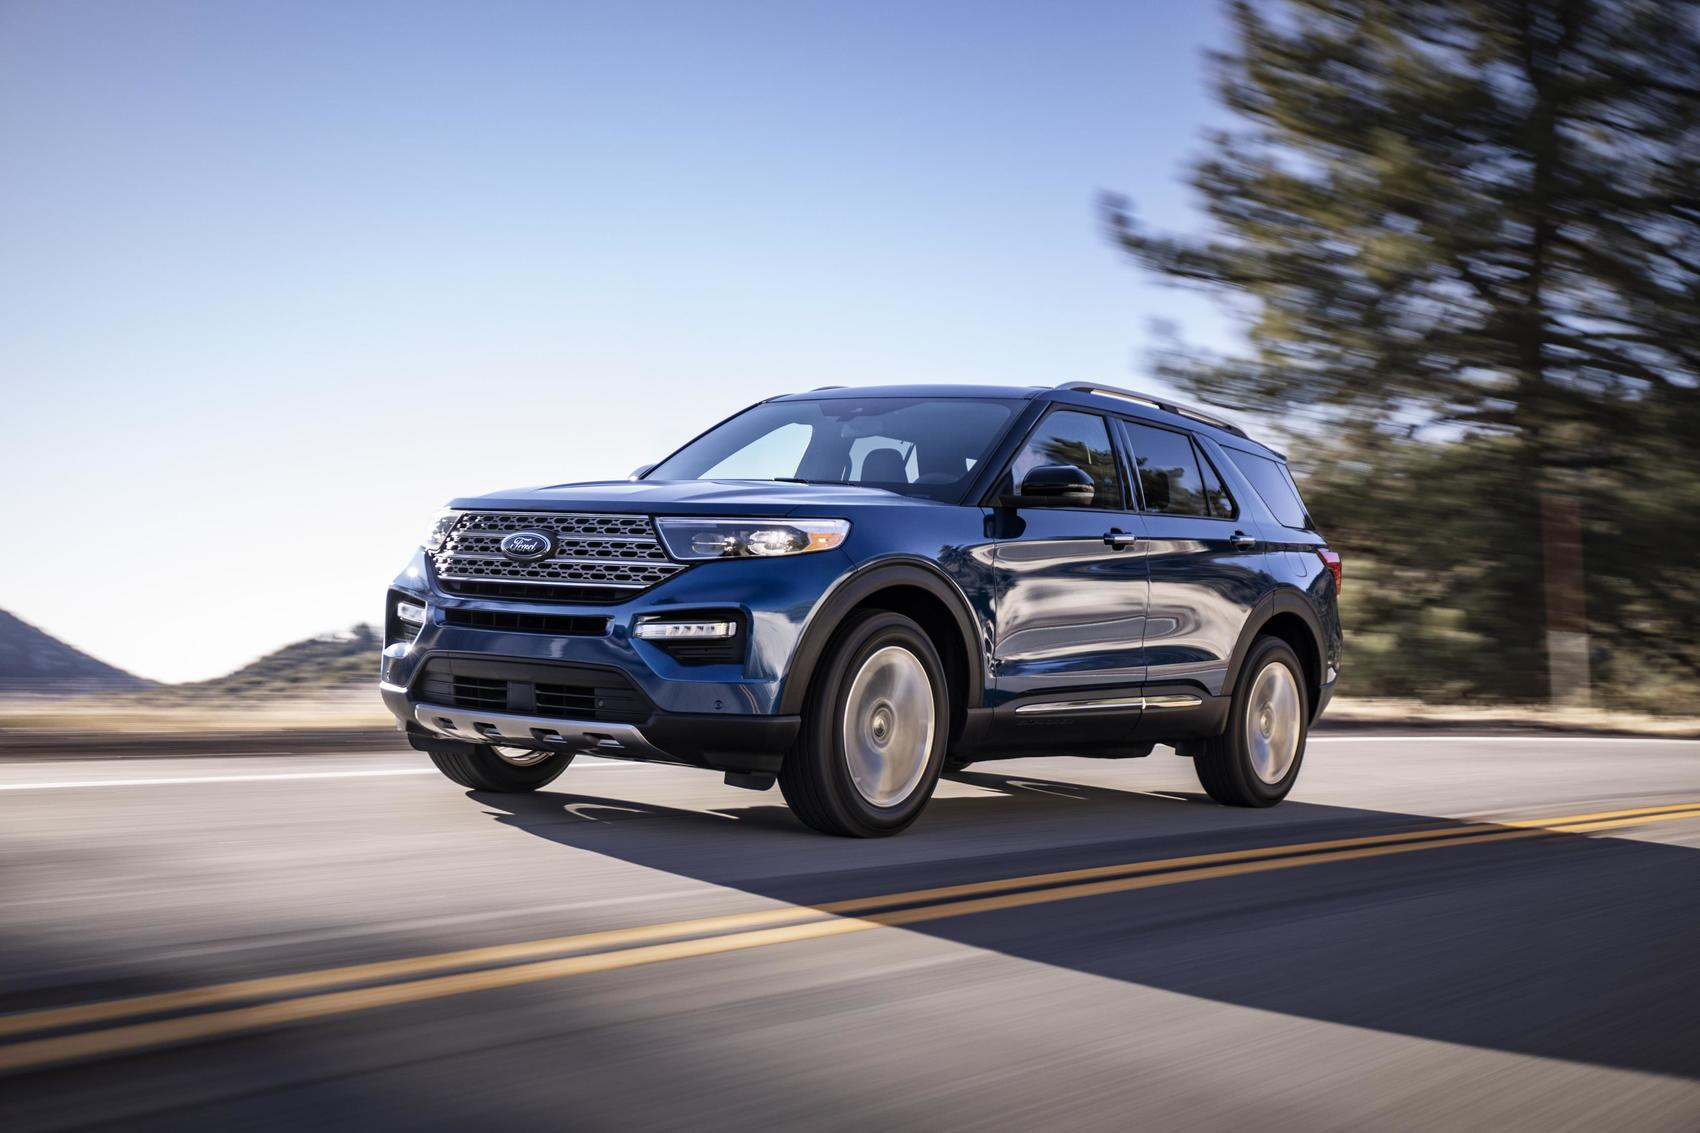 2020 ford explorer history repeats itself 2020 ford explorer history repeats itself